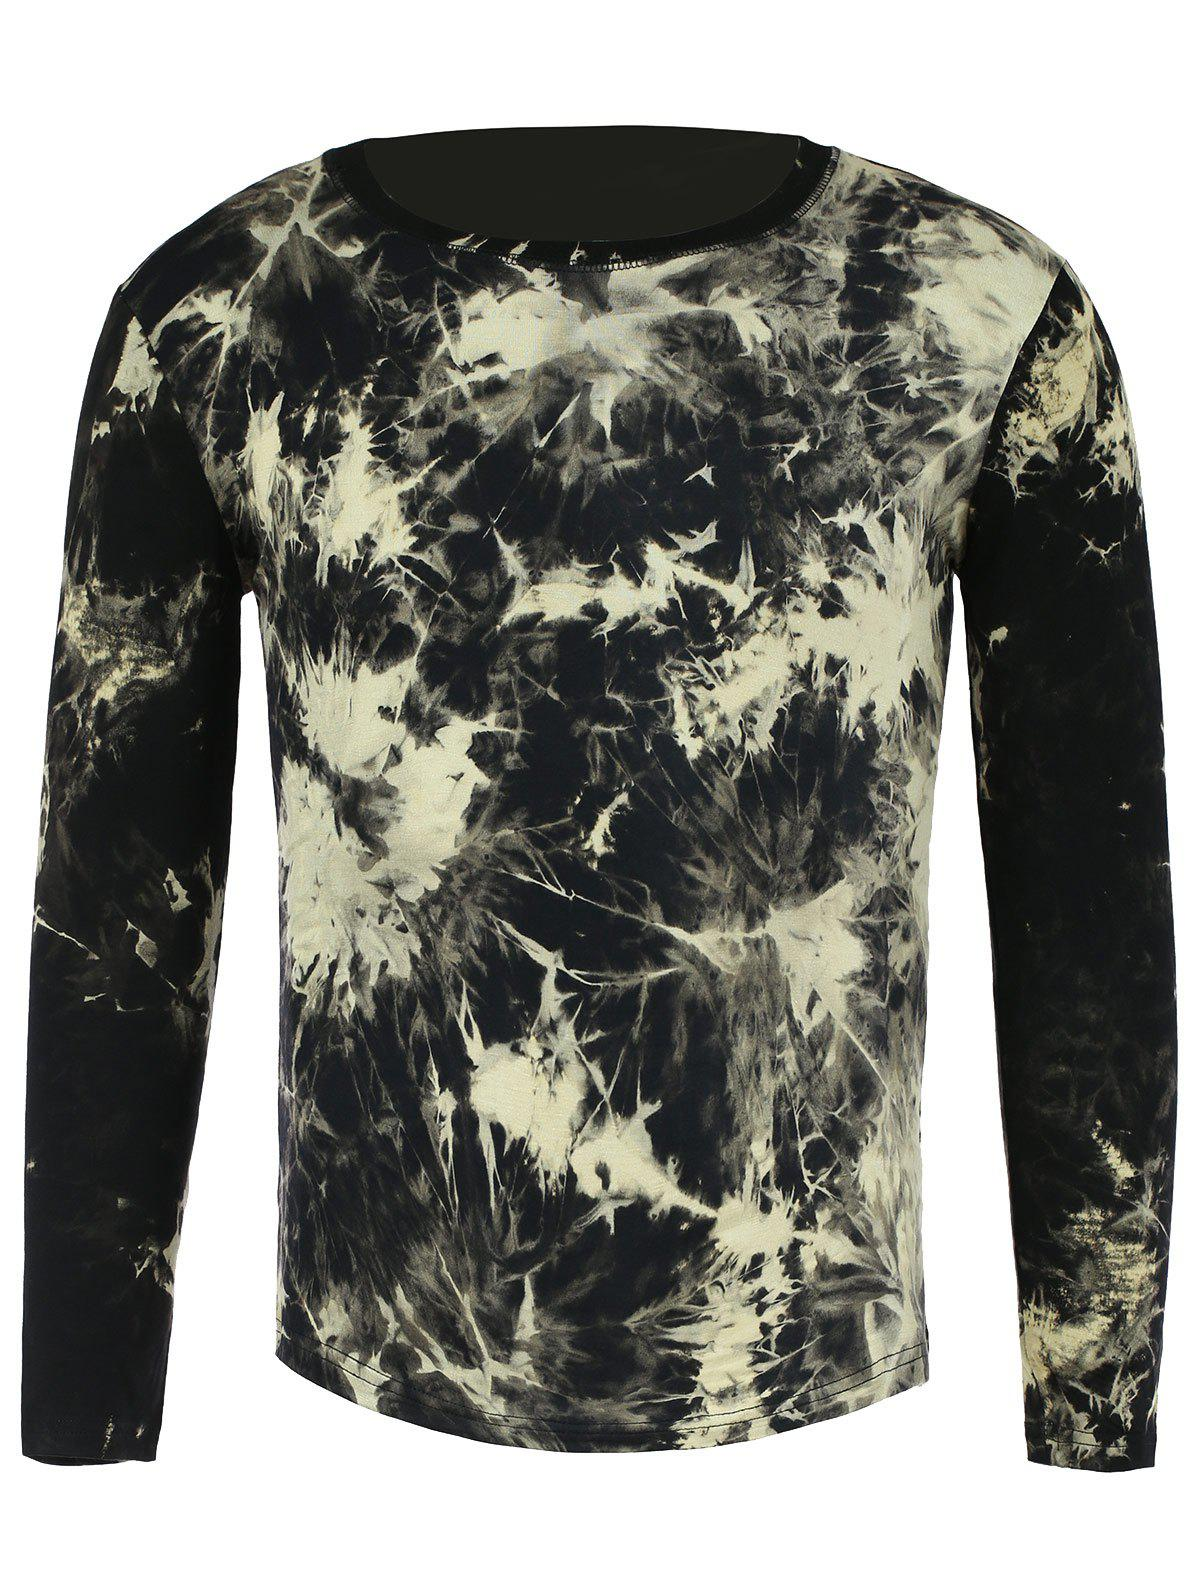 Round Neck Long Sleeve 3D Splashed Ink Print Men's T-Shirt